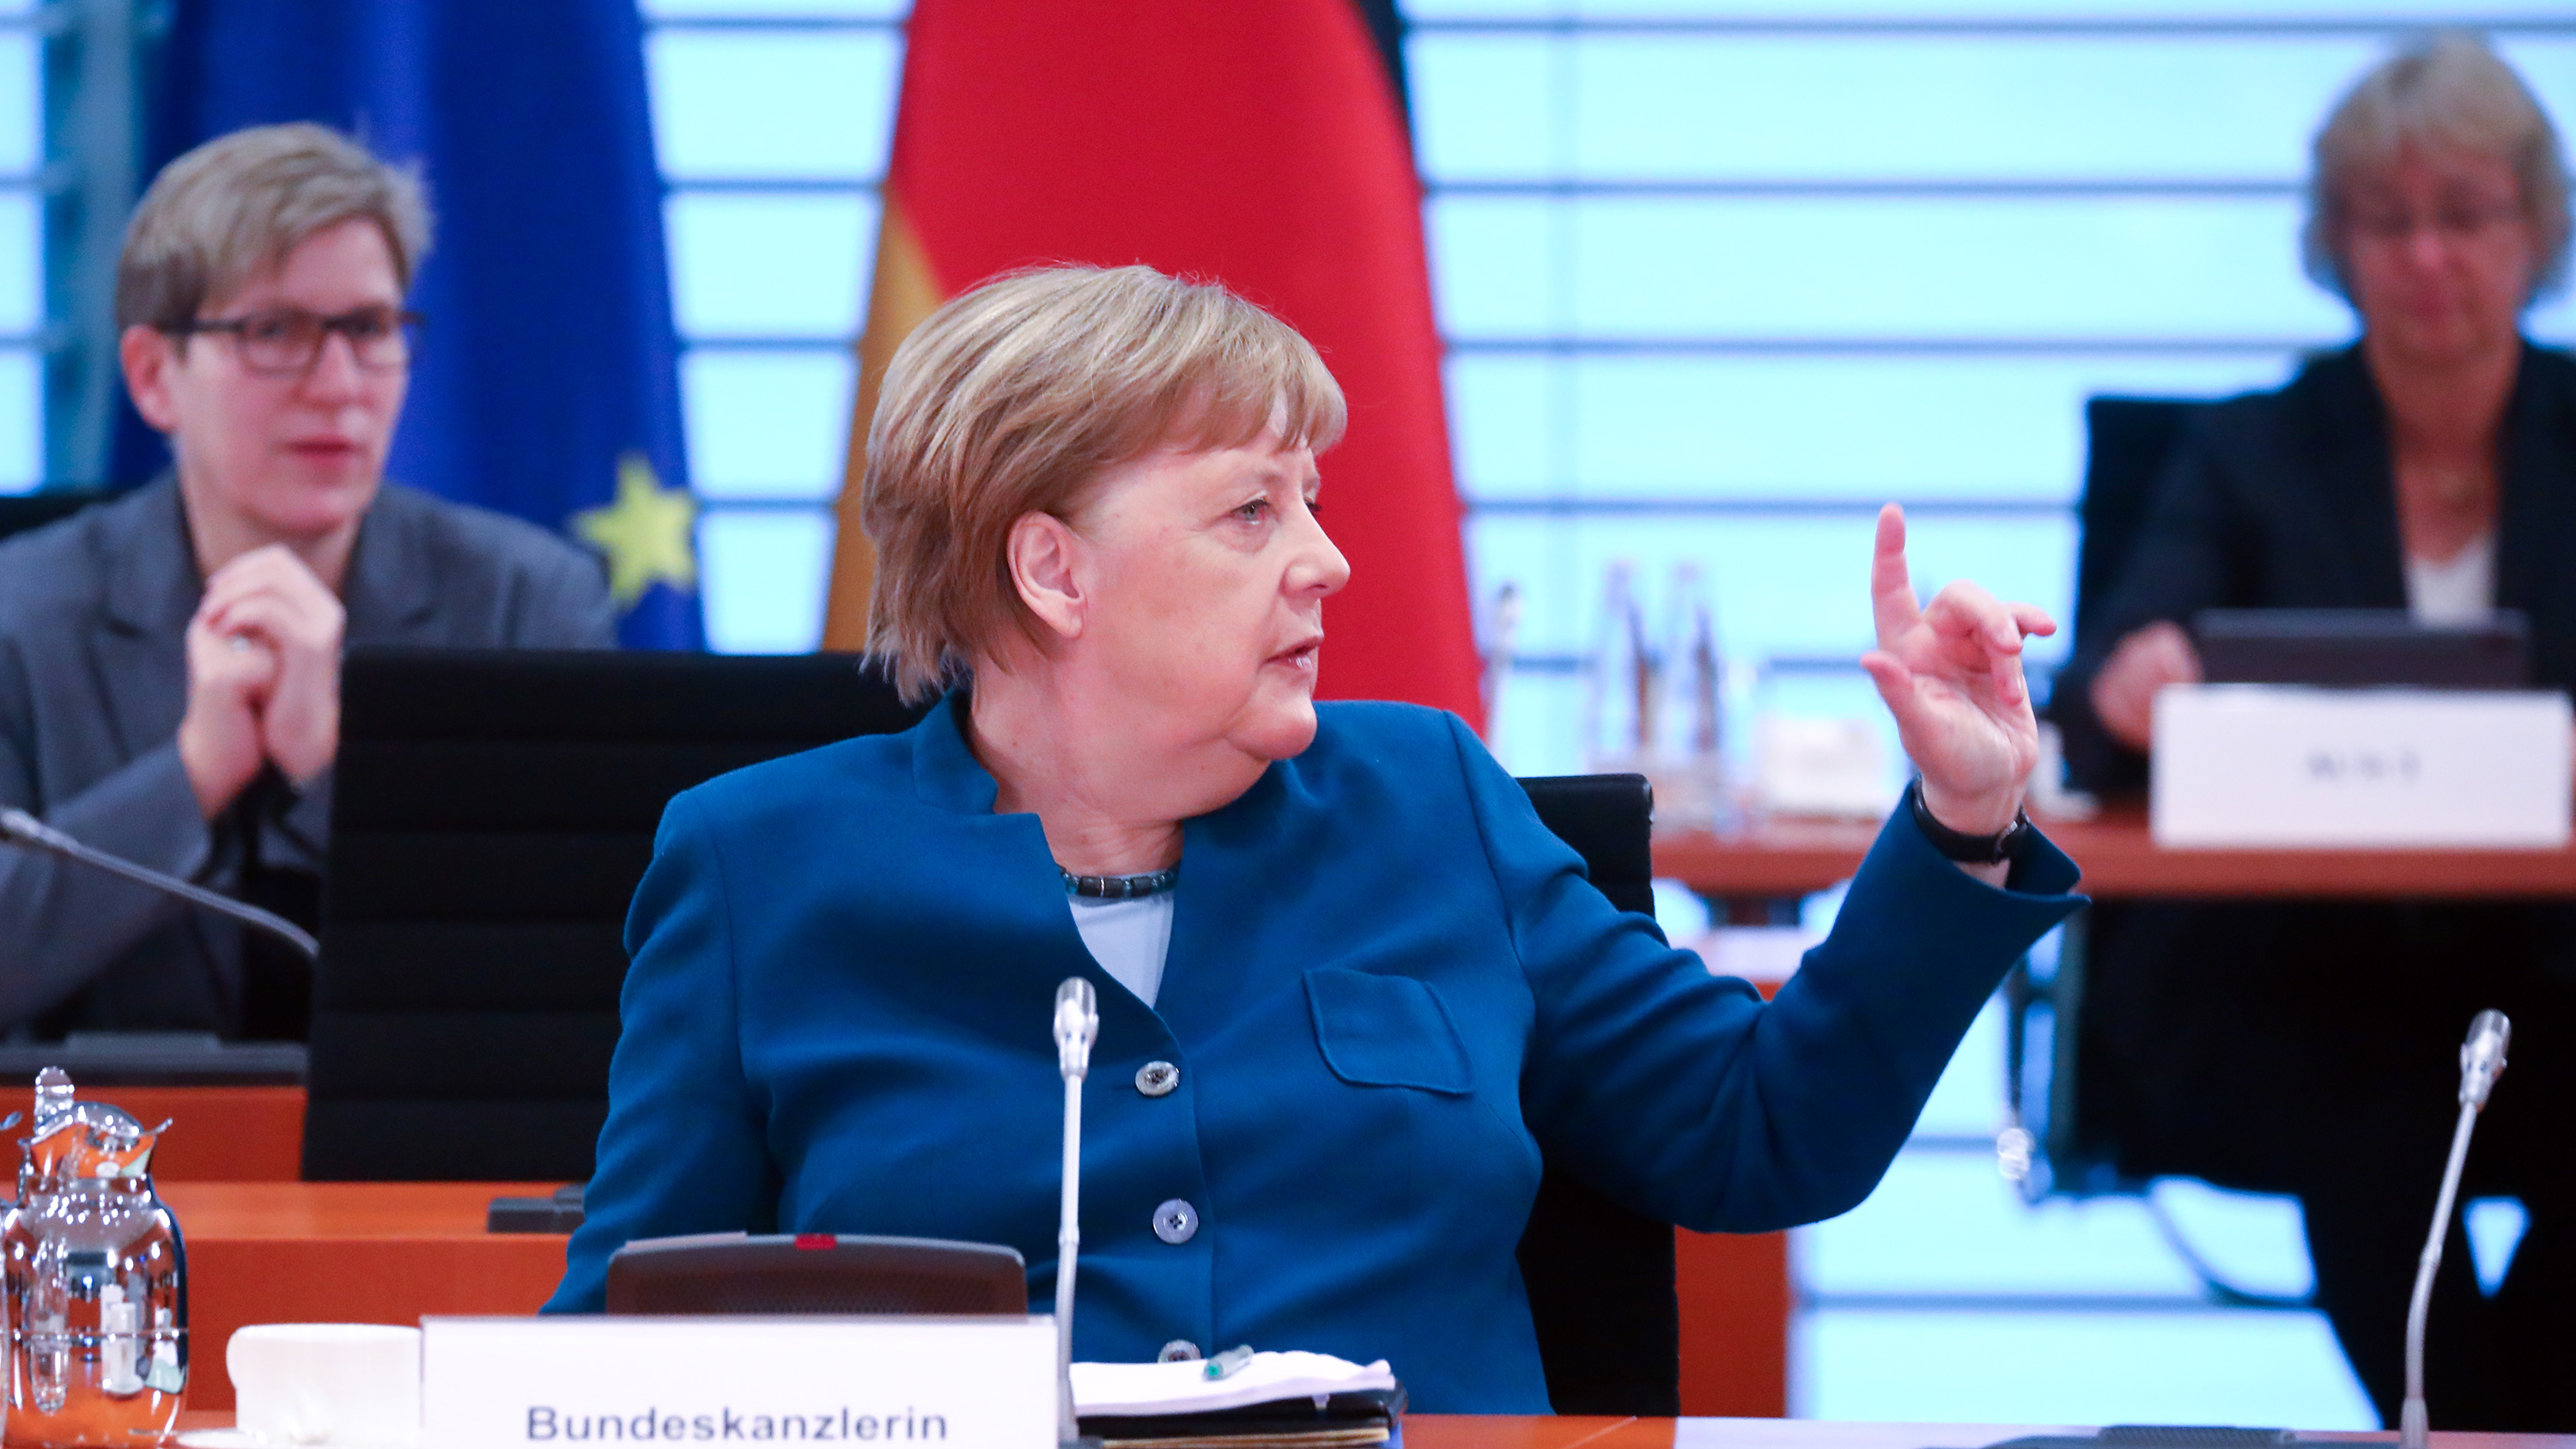 The photo shows the German chancellor at a table turning to her side gesturing to someone off camera.